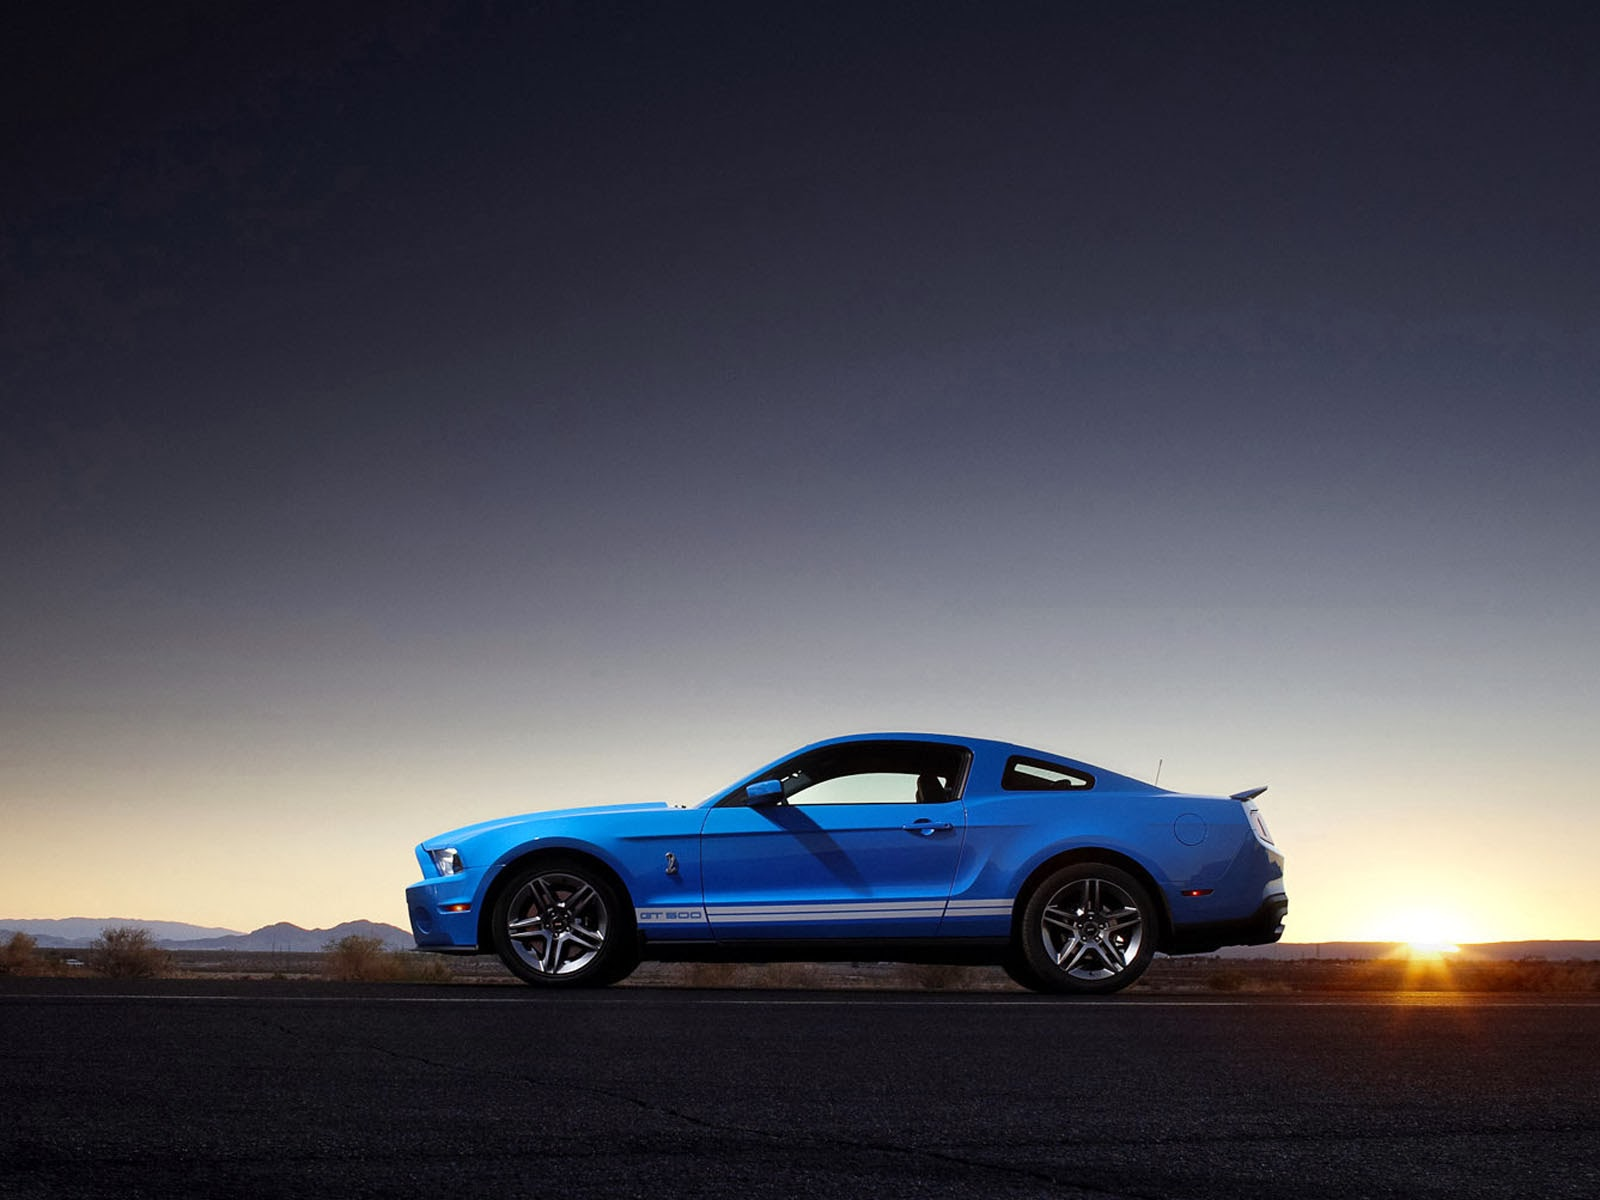 shelby mustang wallpaper - photo #23